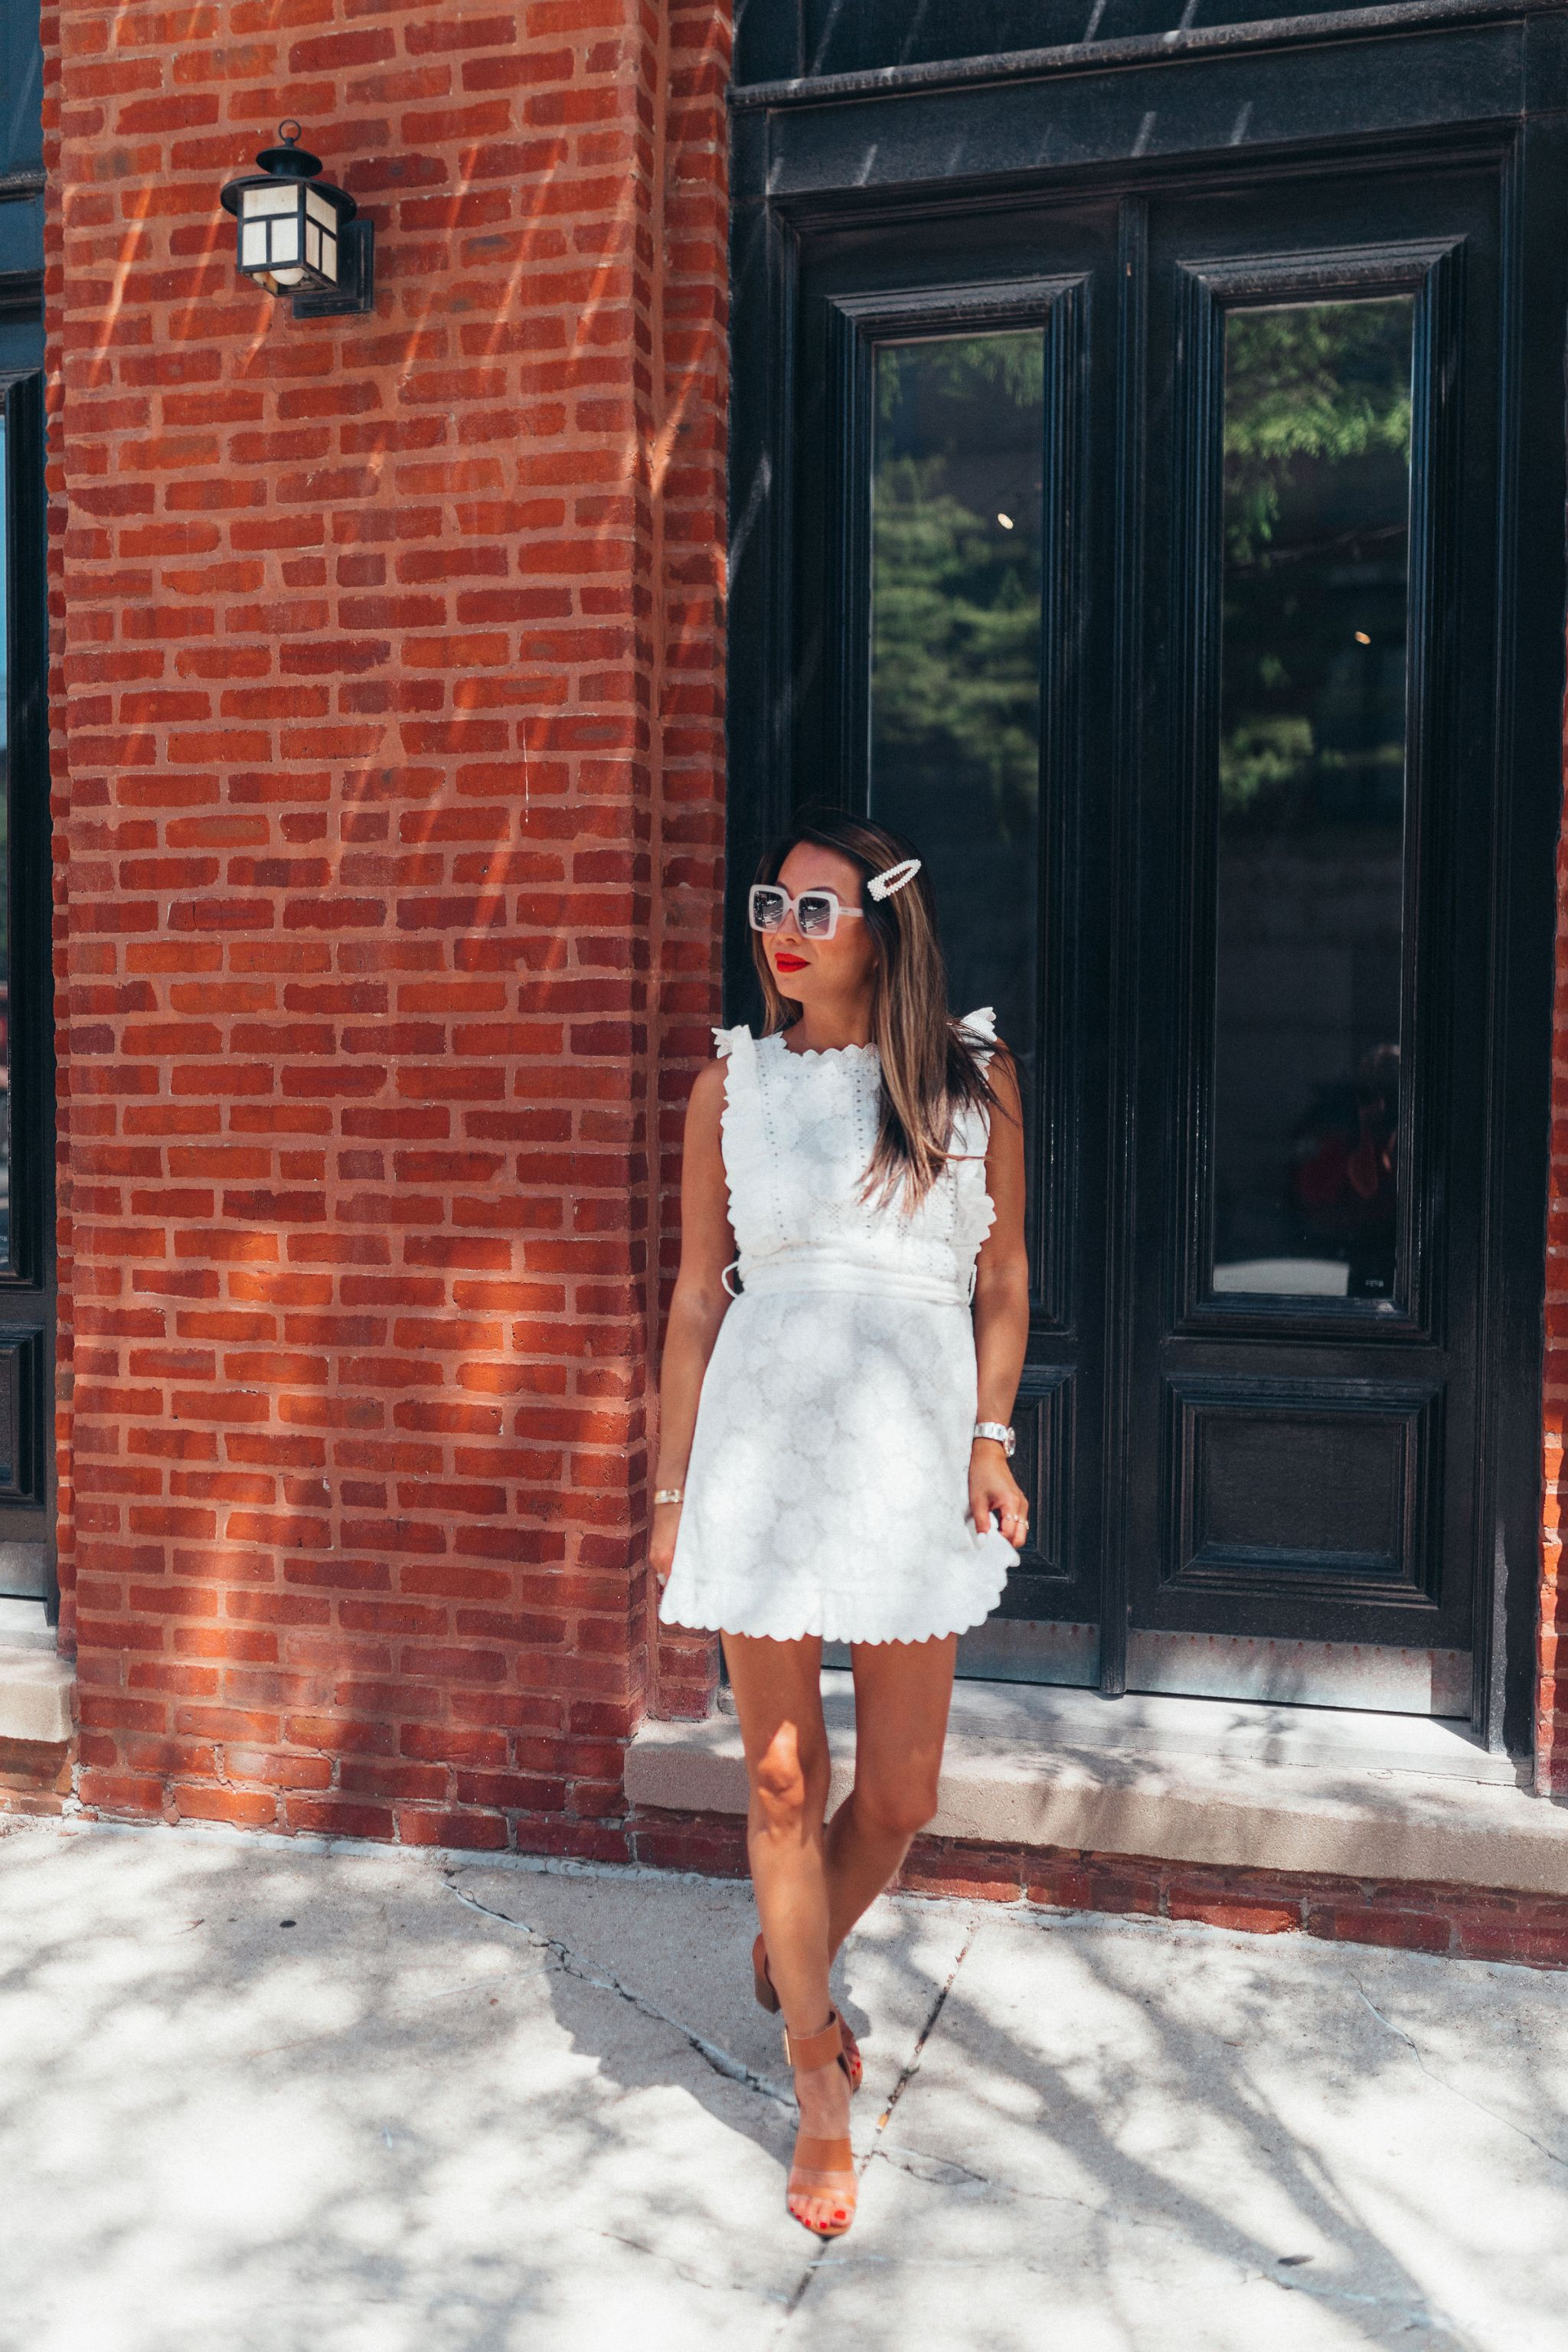 amazon fashion, white eyelet dress, white dress for summer, best amazon white dress, what to wear in the summer, chicago summer style, Jennifer Worman, Best Chicago Fashion Blog, Best Chicago Mom Blogger, Best White Dresses for Summer